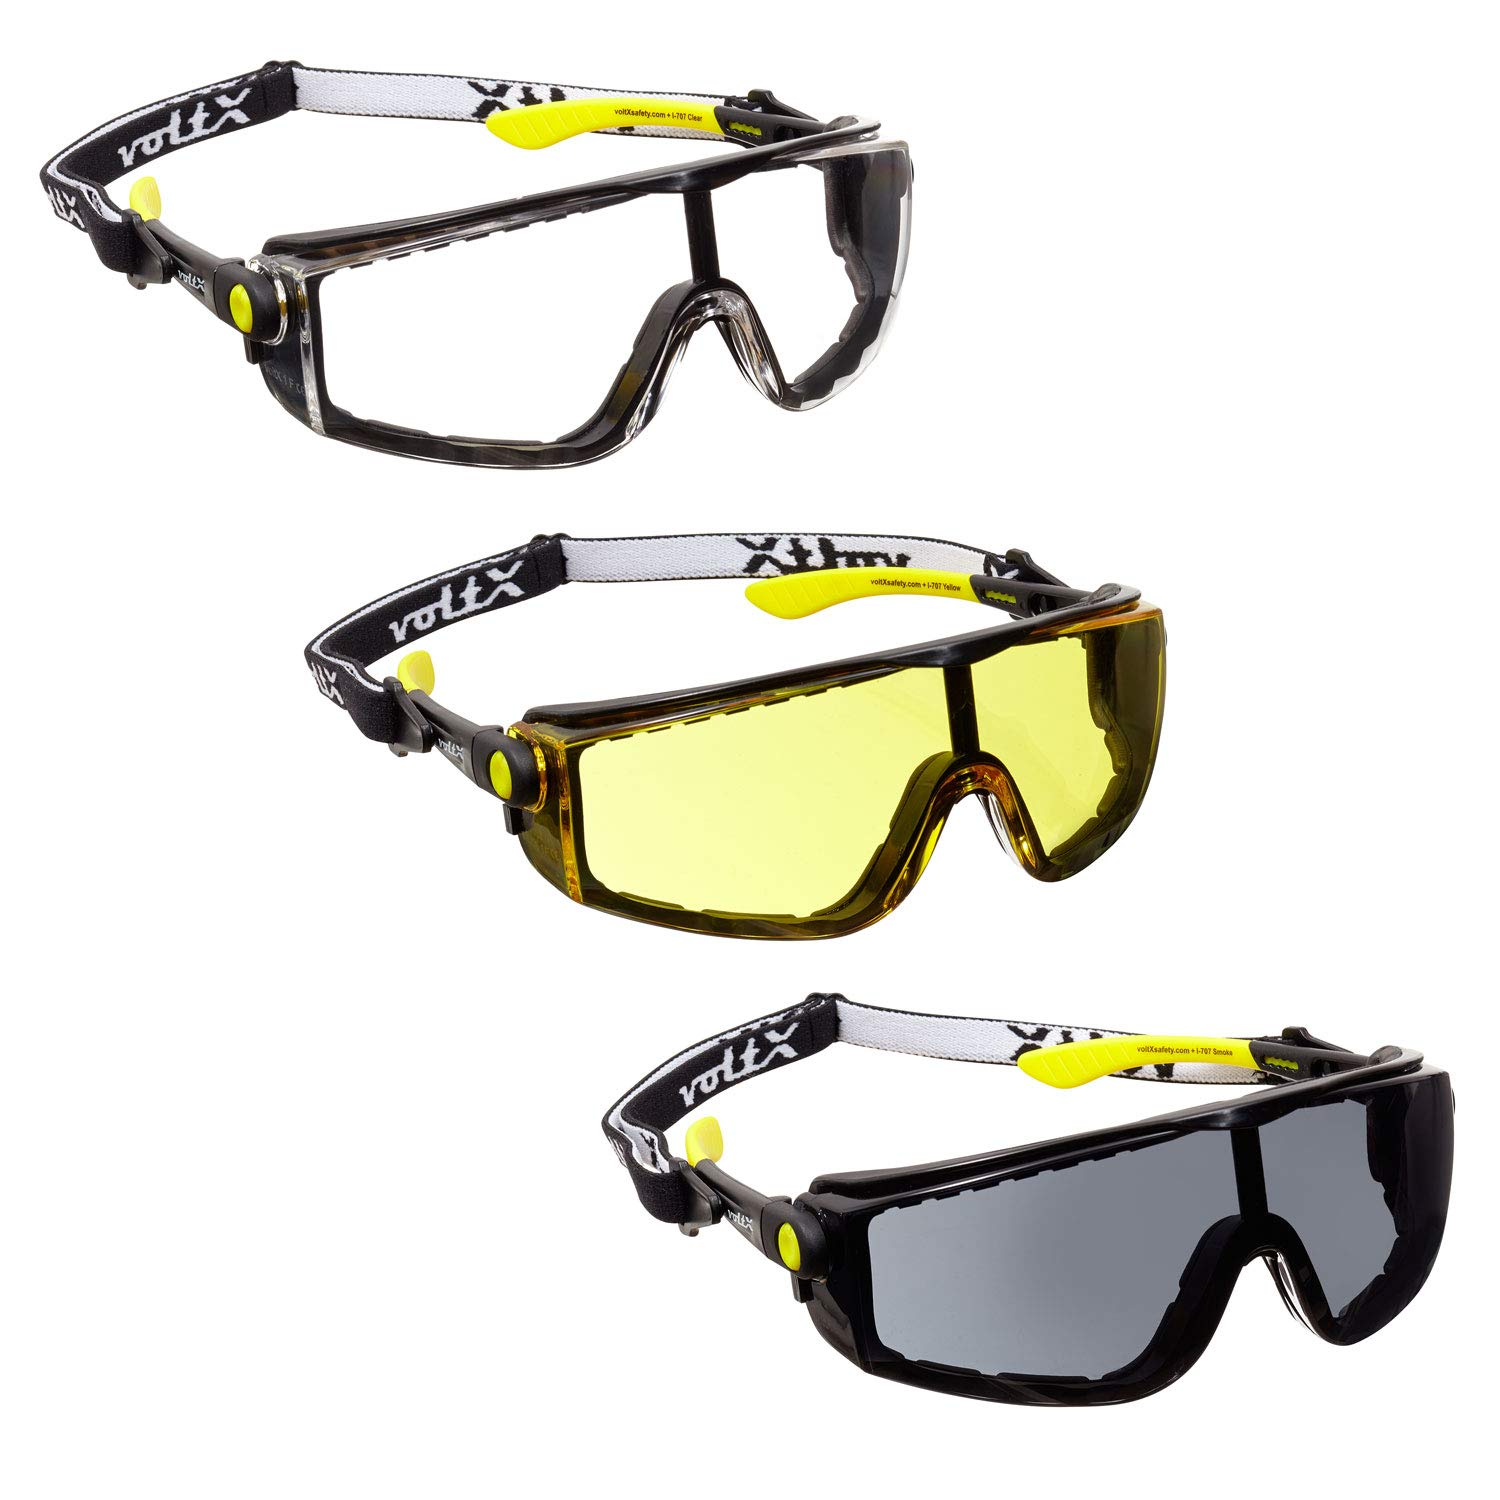 3 x voltX 'QUAD' 4 in 1 CLEAR, YELLOW & SMOKE Lens Safety Glasses, with foam insert, removable headstrap, CE EN166f certified